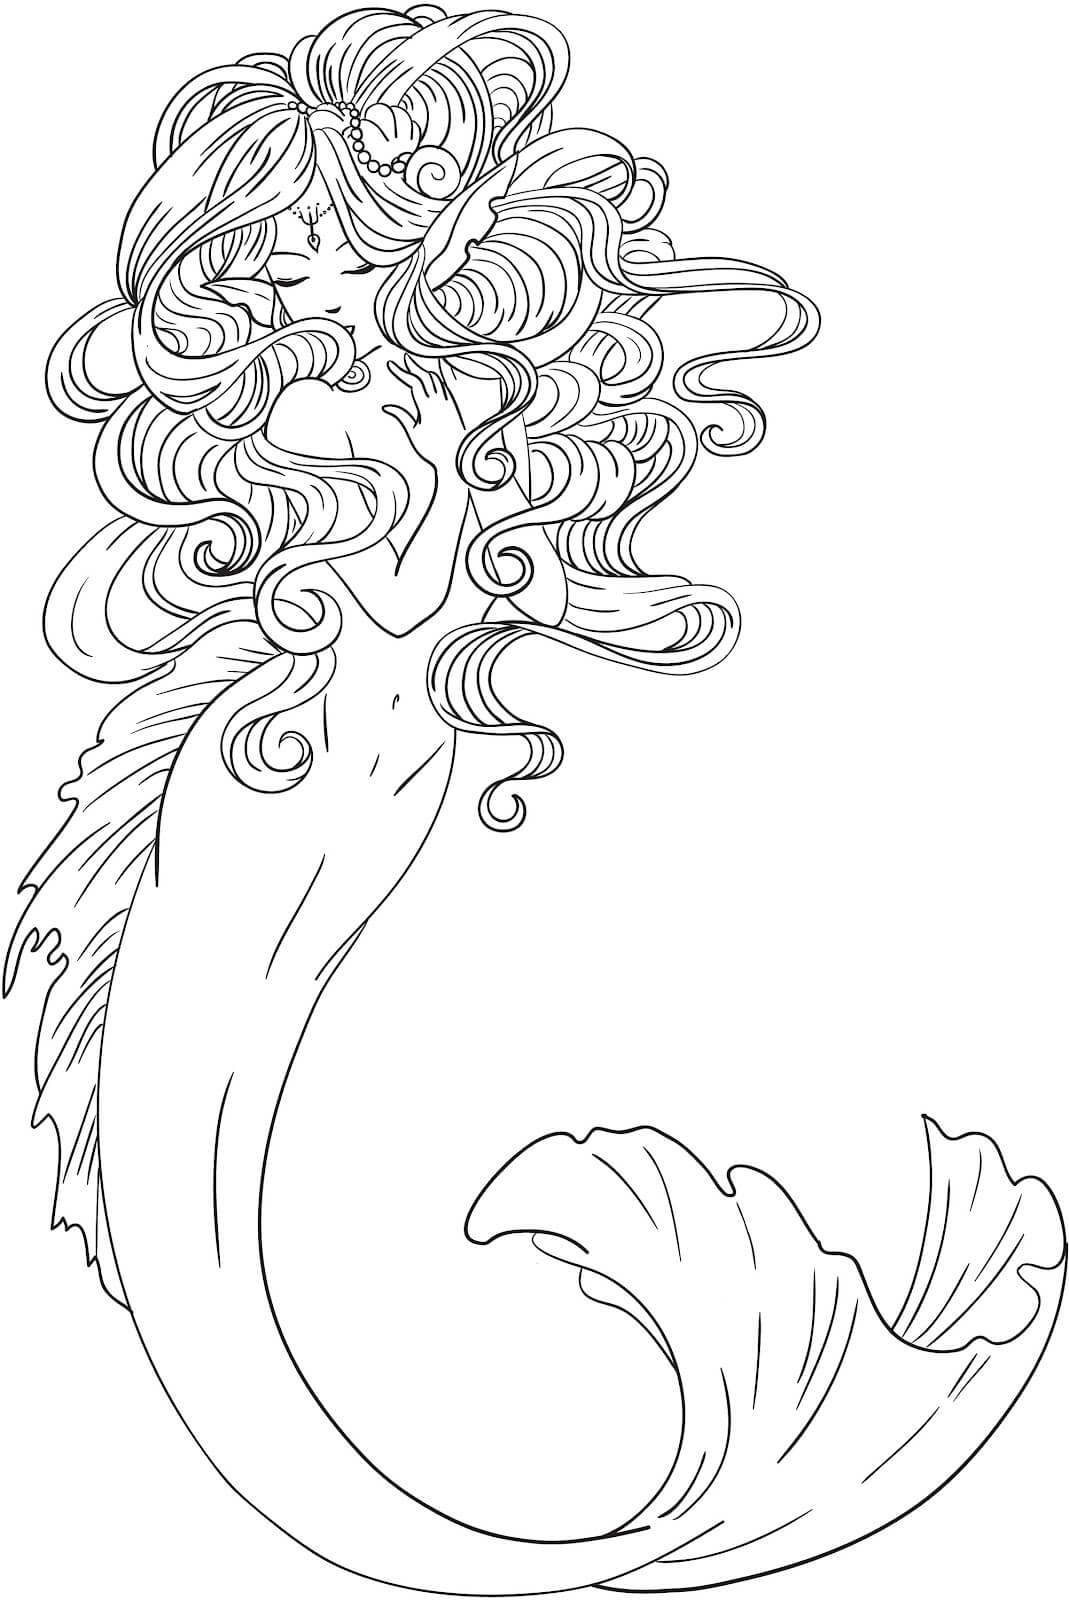 mermaid coloring pages for adults aaldtk